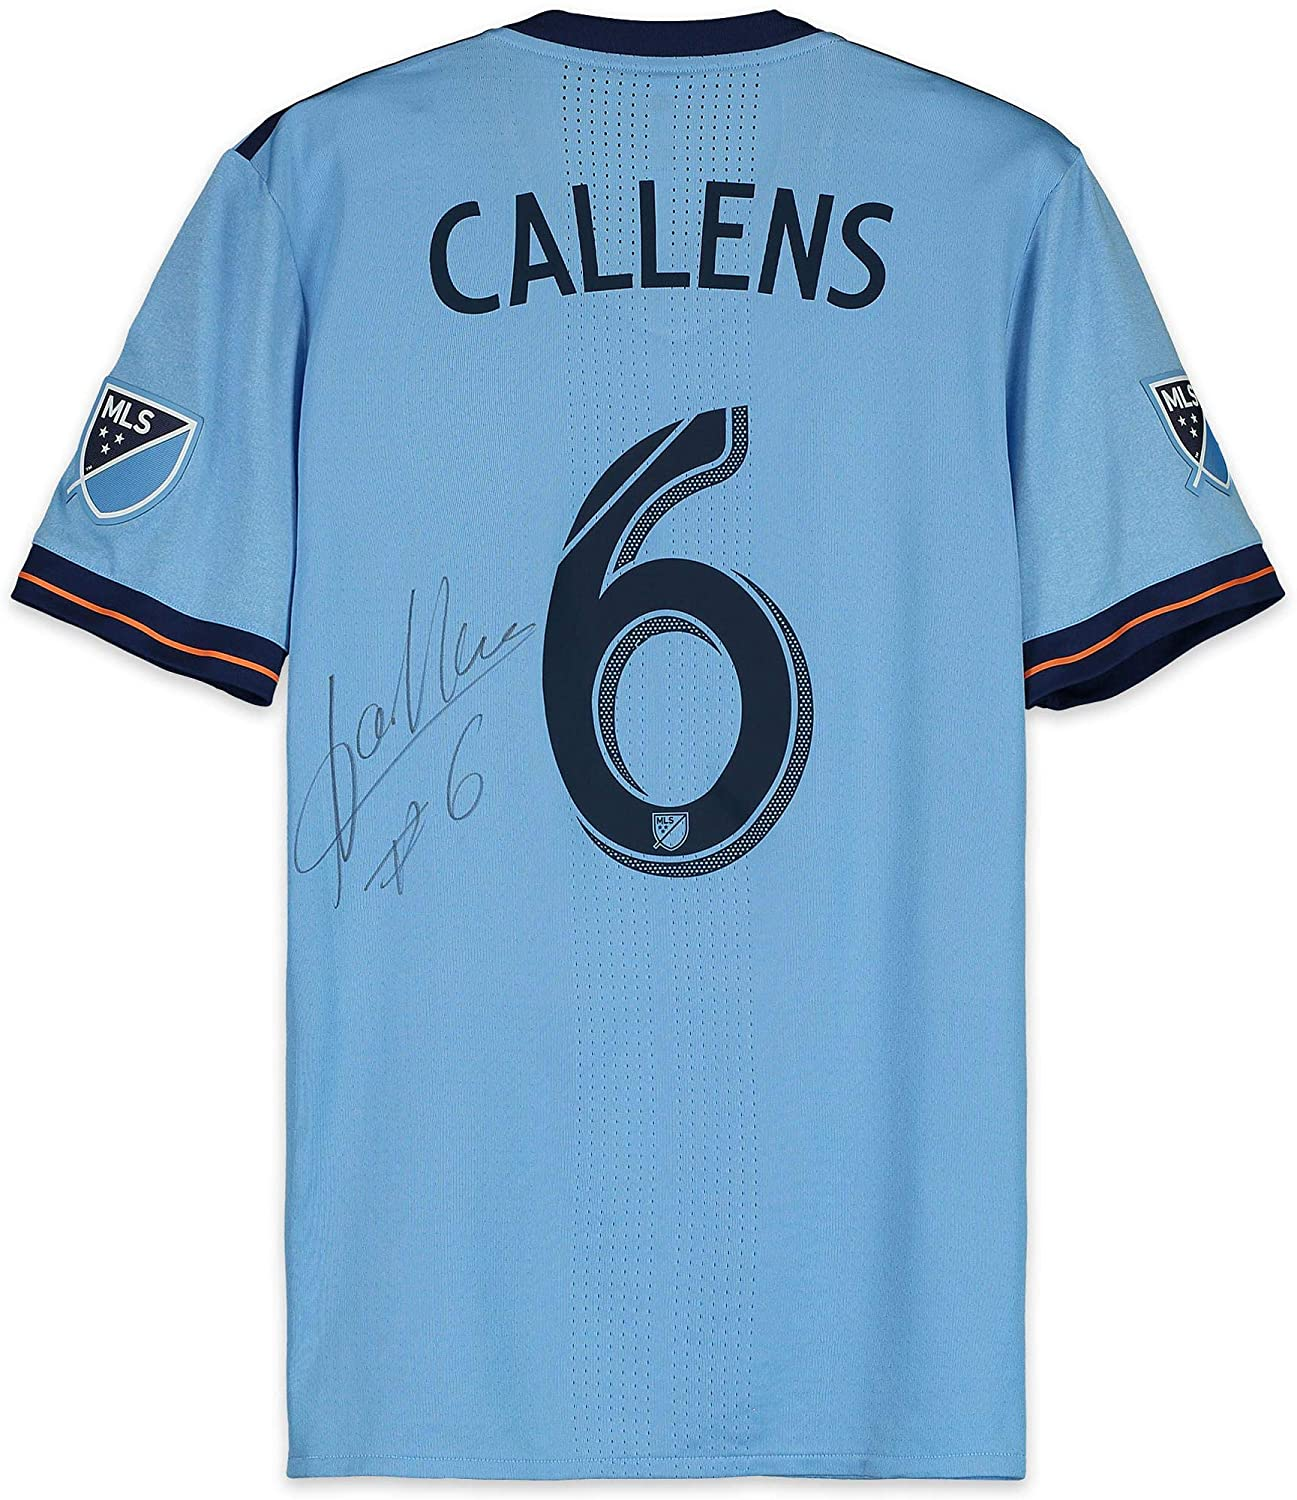 Alexander Callens New York City FC Autographed Match-Used Blue #6 Jersey from the 2018 MLS Season - Fanatics Authentic Certified